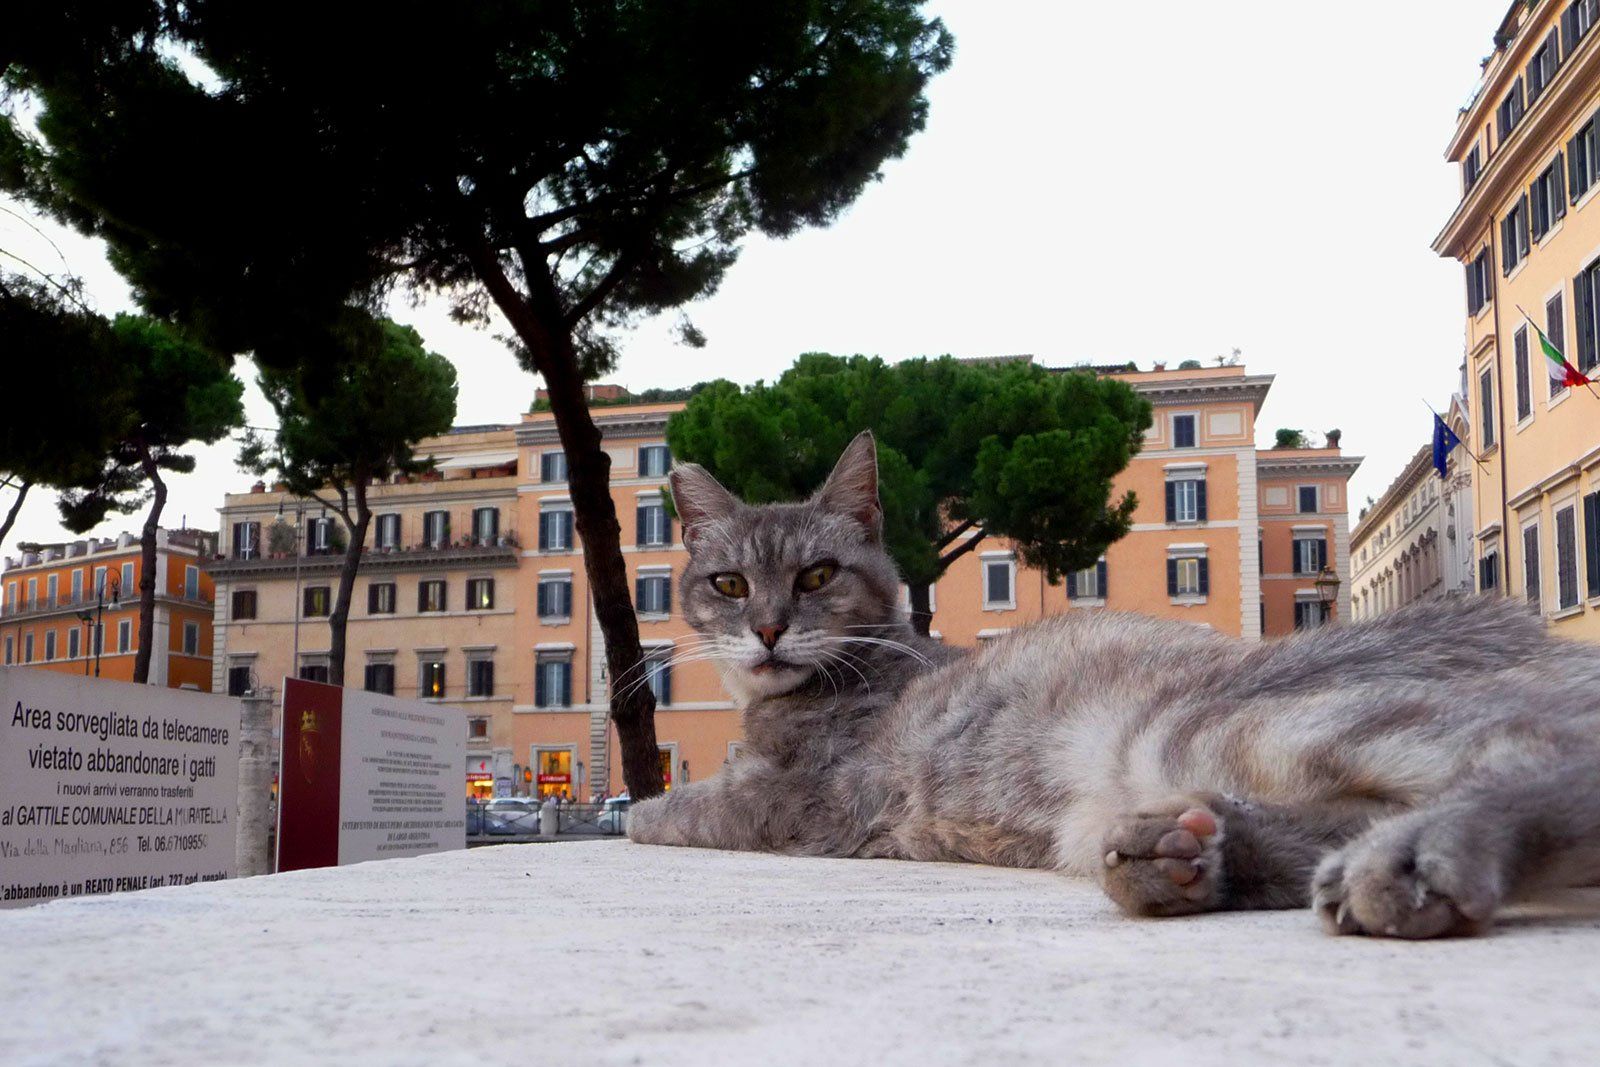 How to become a cat caregiver in Rome